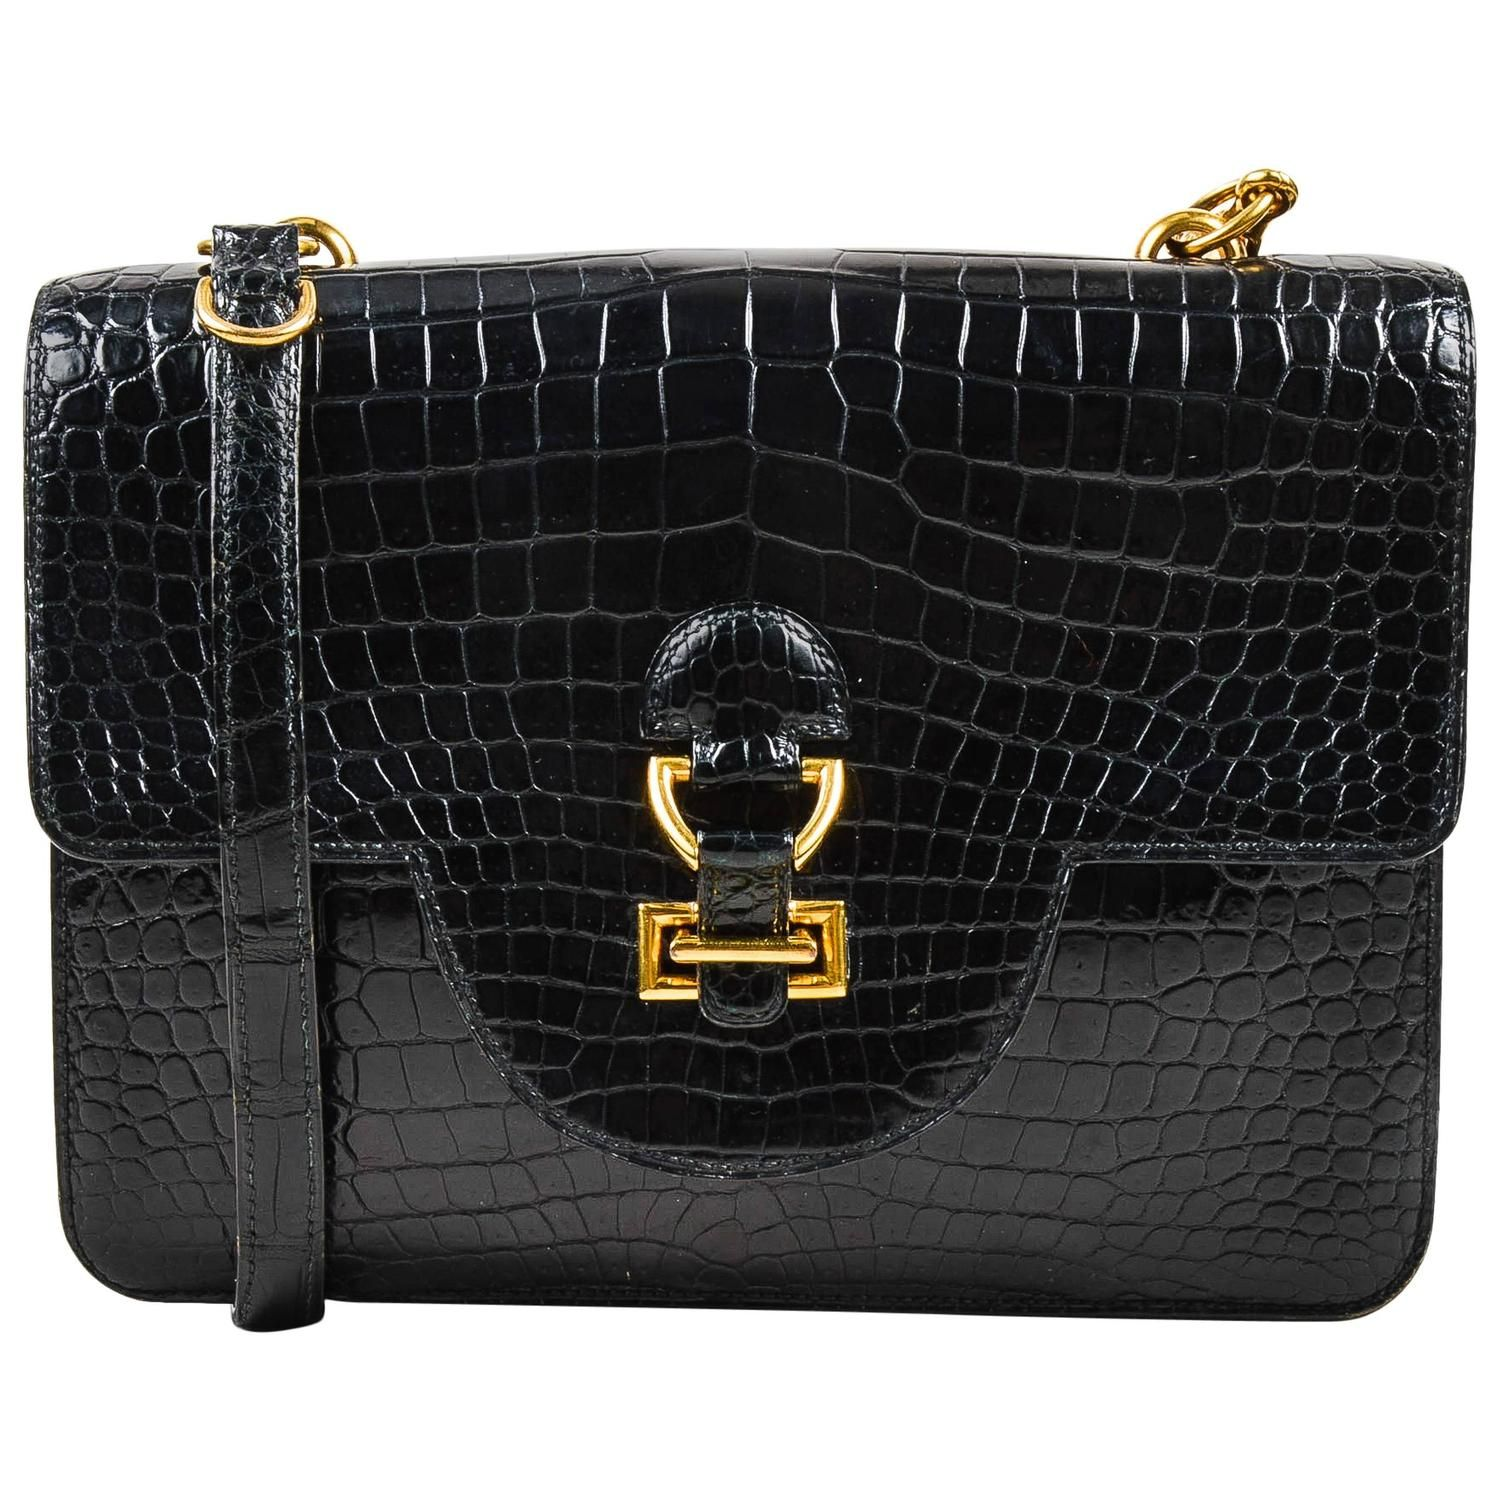 For Sale on - Beautiful  Sandrine  shoulder bag circa 1986 constructed of  timeless black crocodile leather with a glossy finish. Flap with. Vintage  Hermes ... 76ab33bc22754